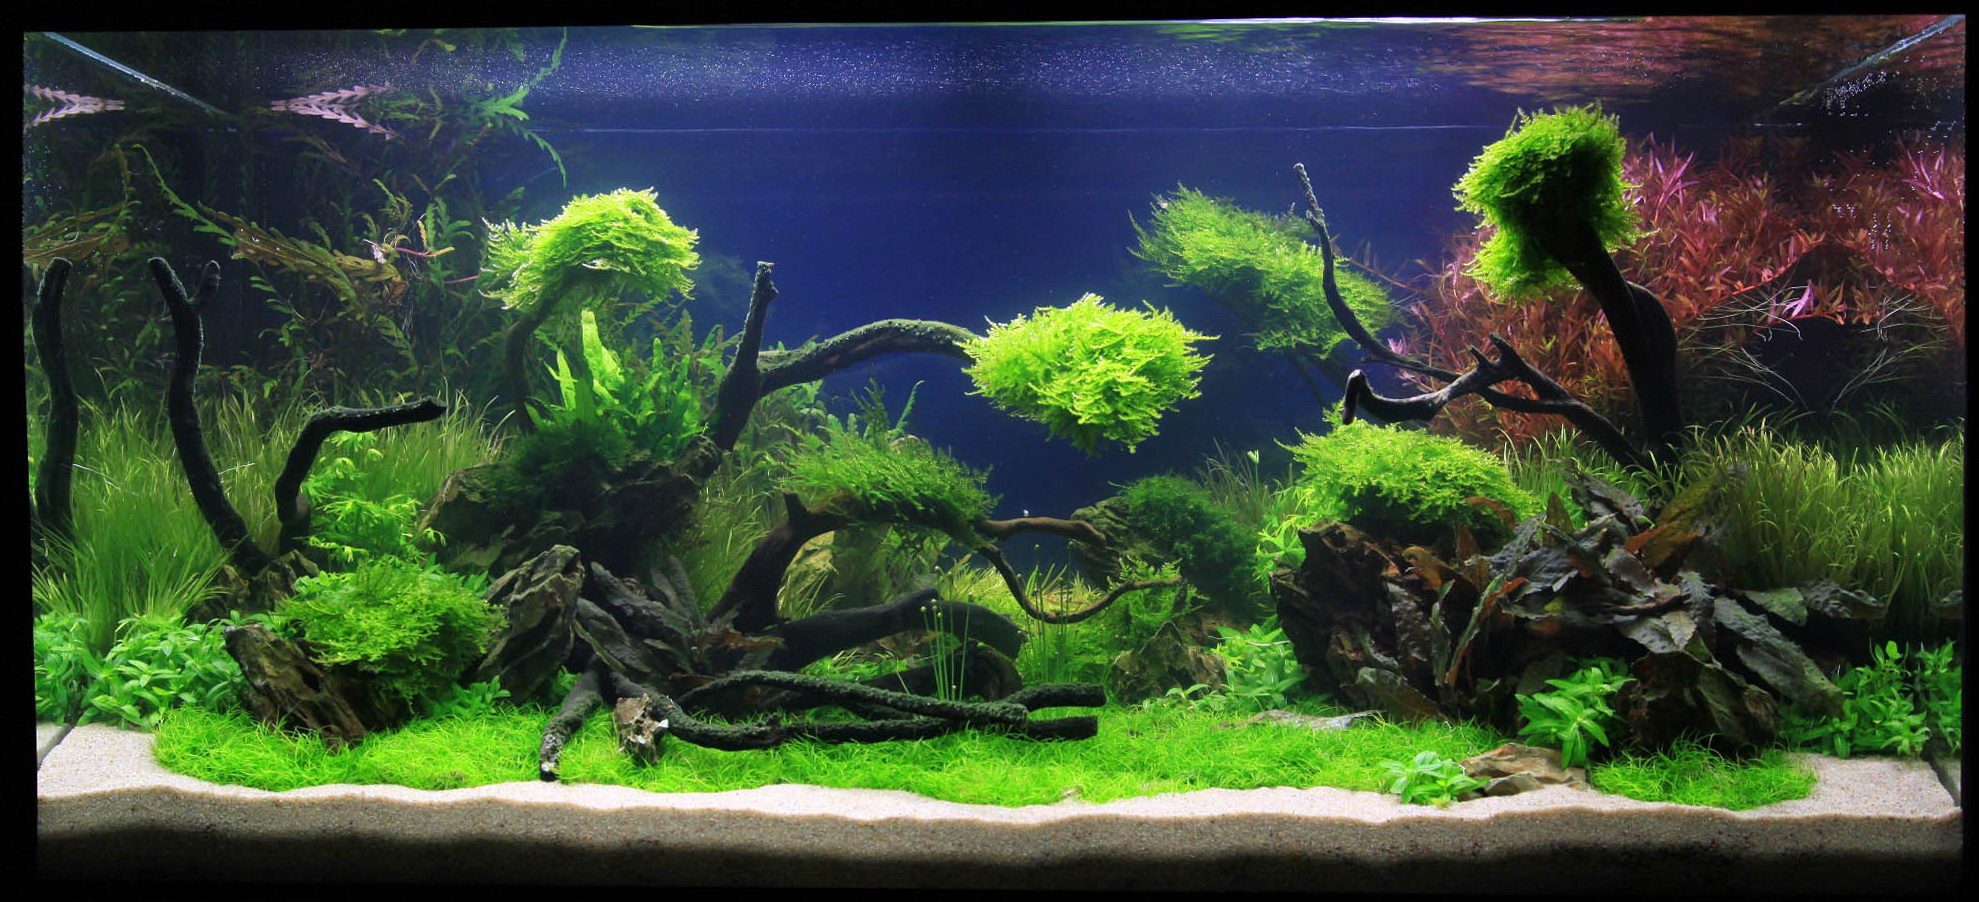 Adrie baumann and aquascaping aqua rebell for Design aquarium